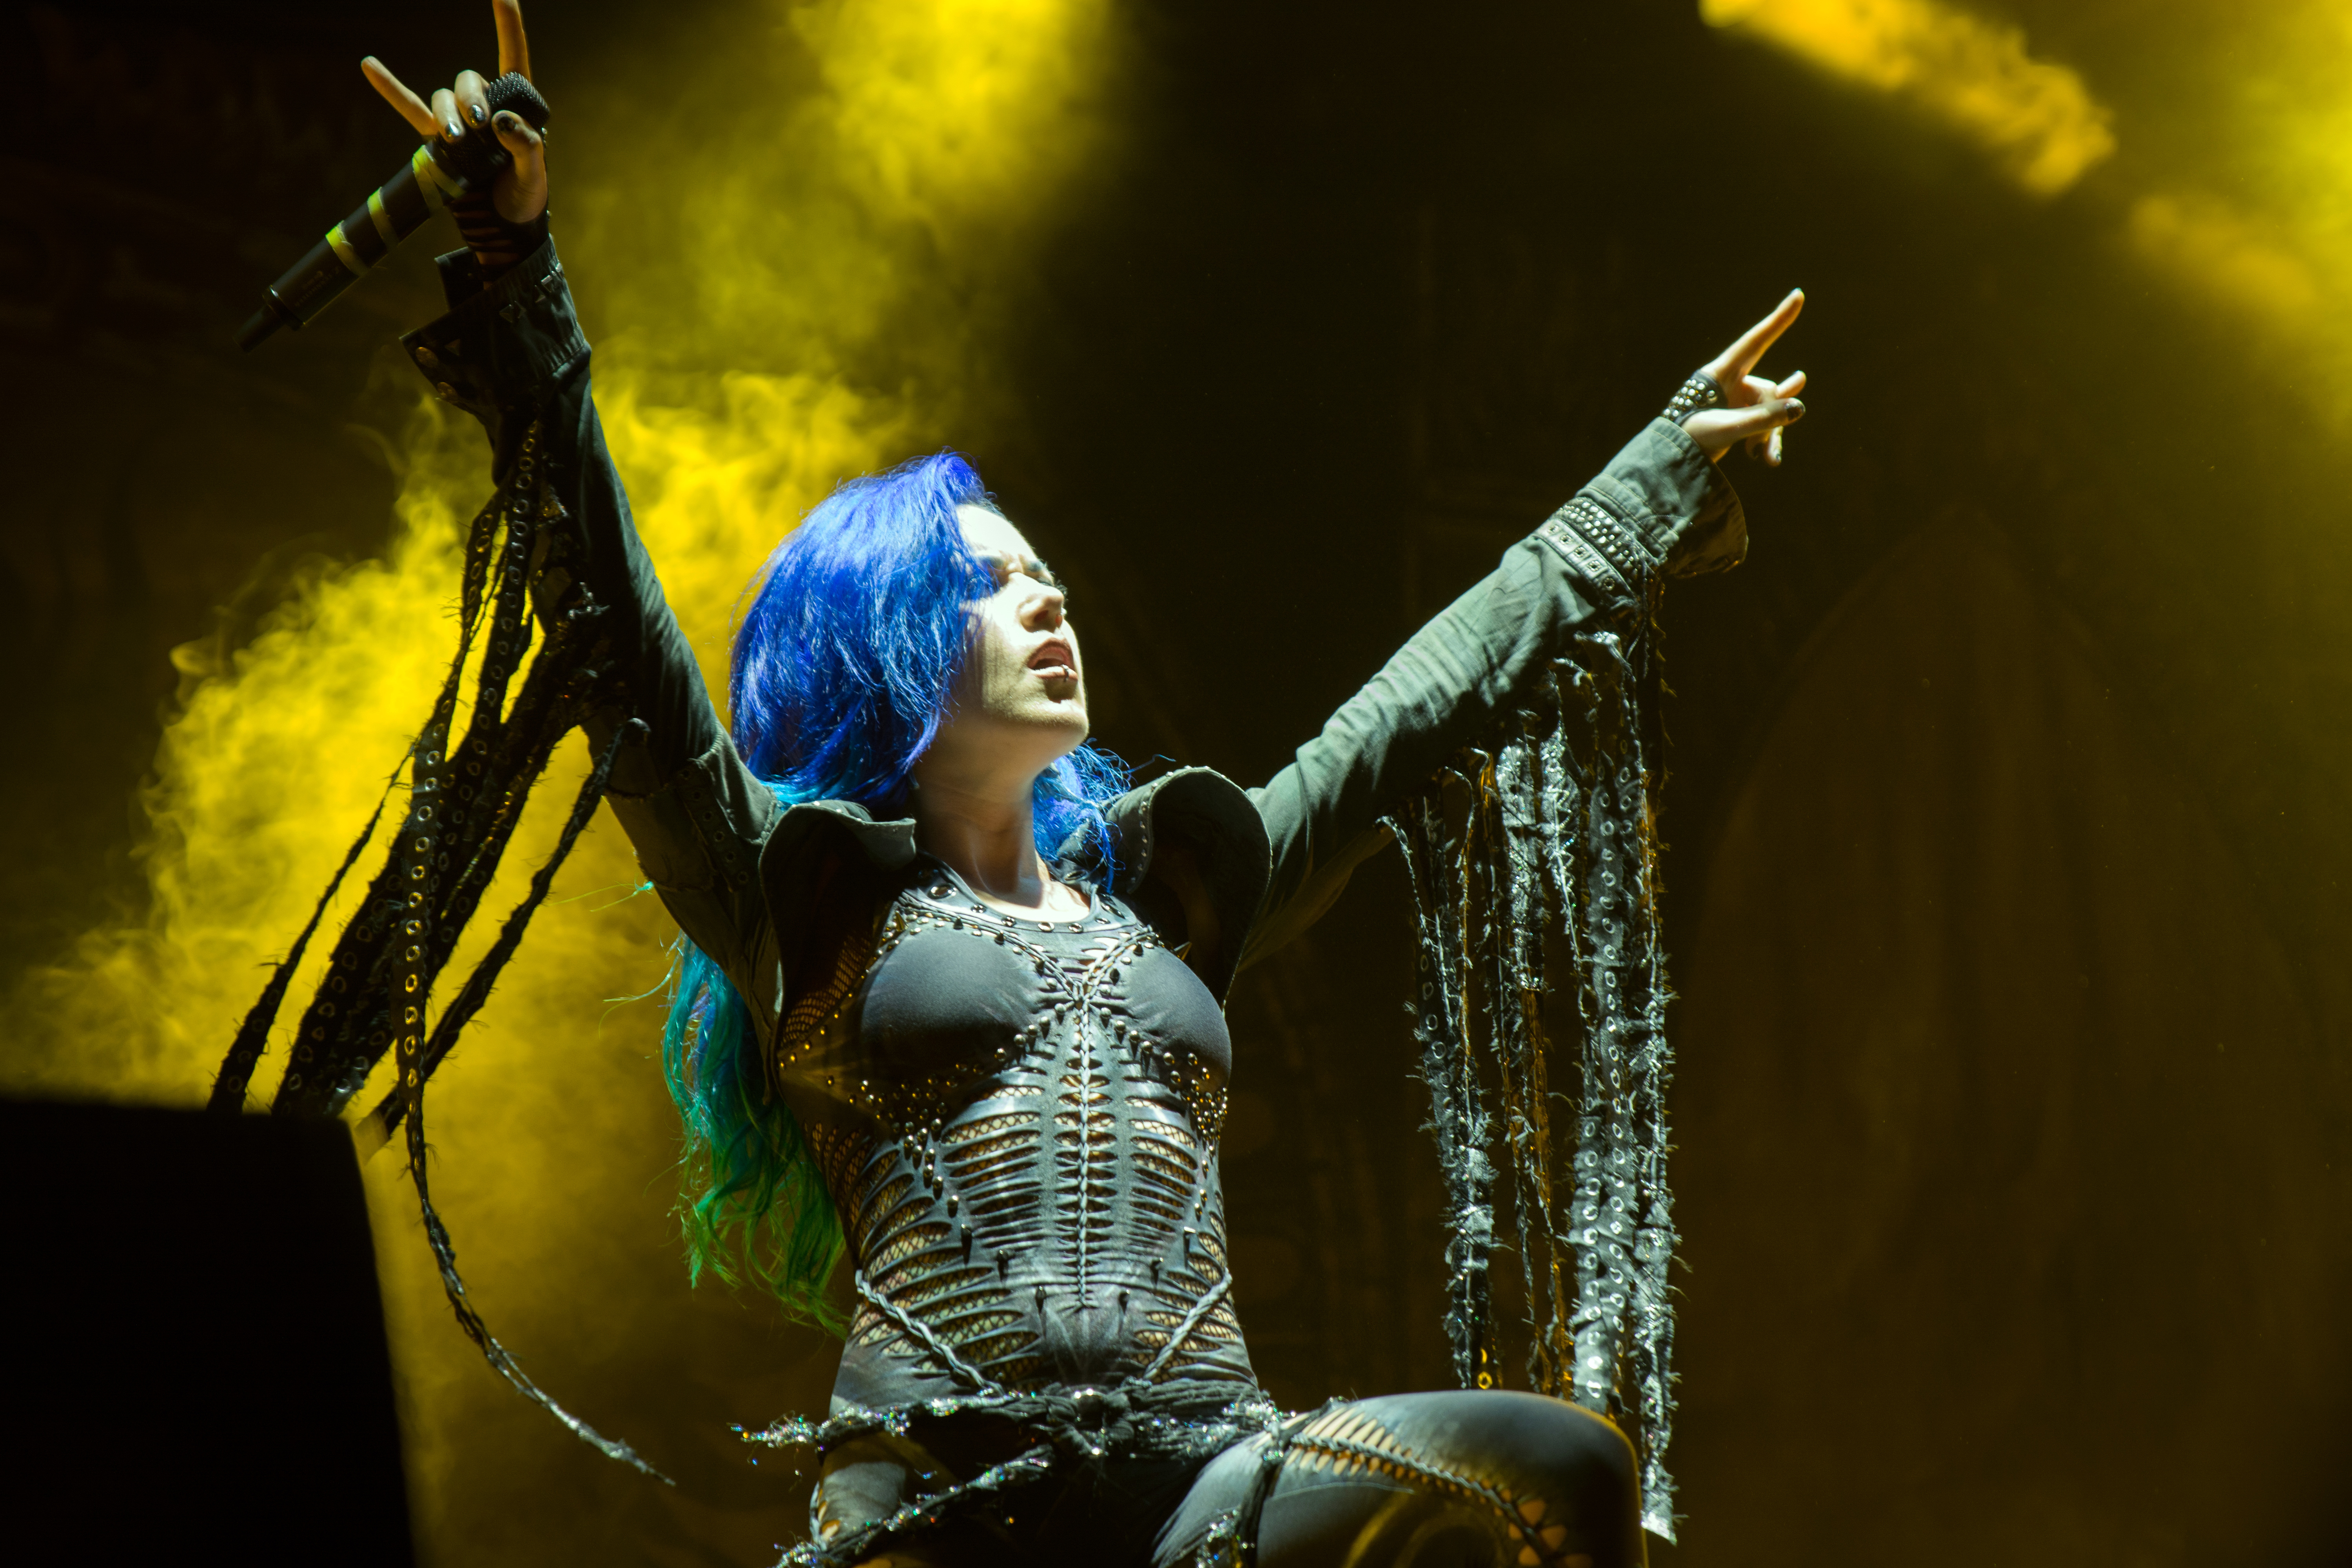 Alissa White Gluz On Twitter Congratulations To: Human Rights Activist, Singer